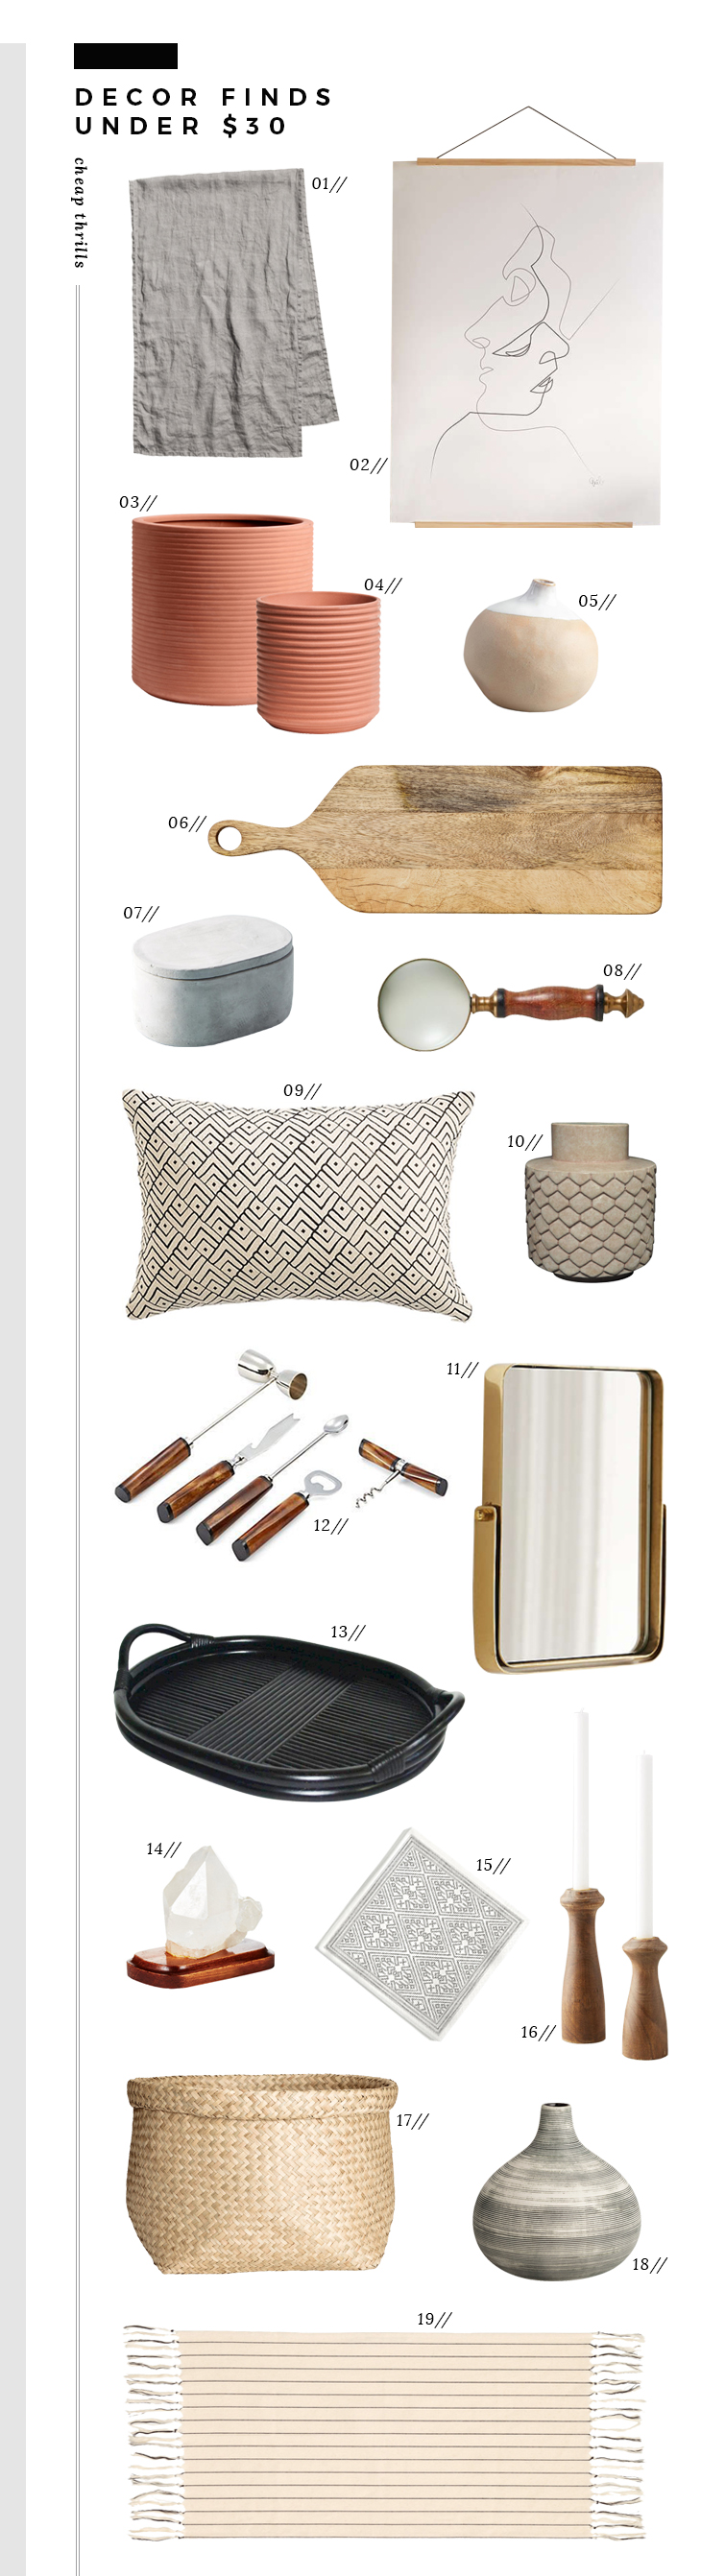 Cheap Thrills - Decor Under $30